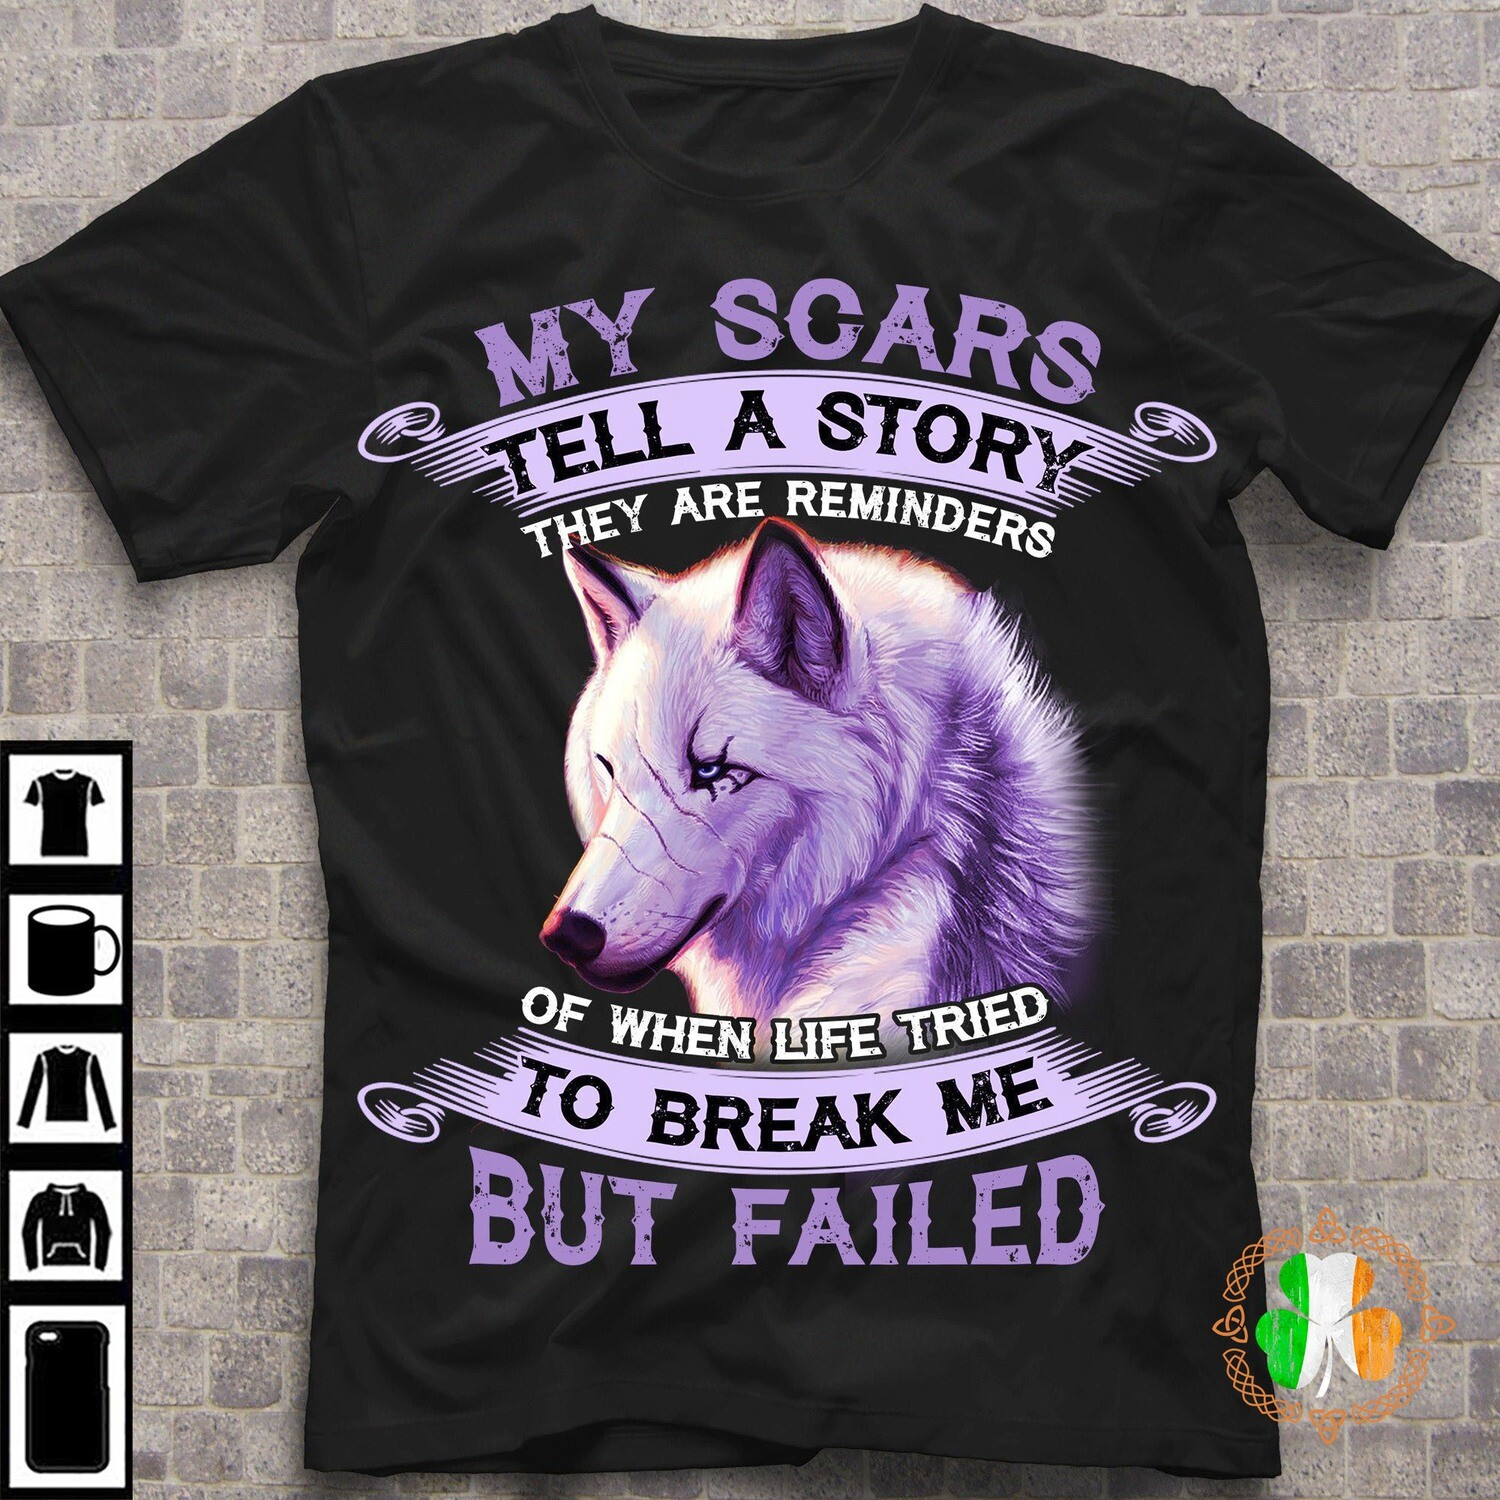 my scors tell a syory they are reminders of when life tried to break me but failed shirt